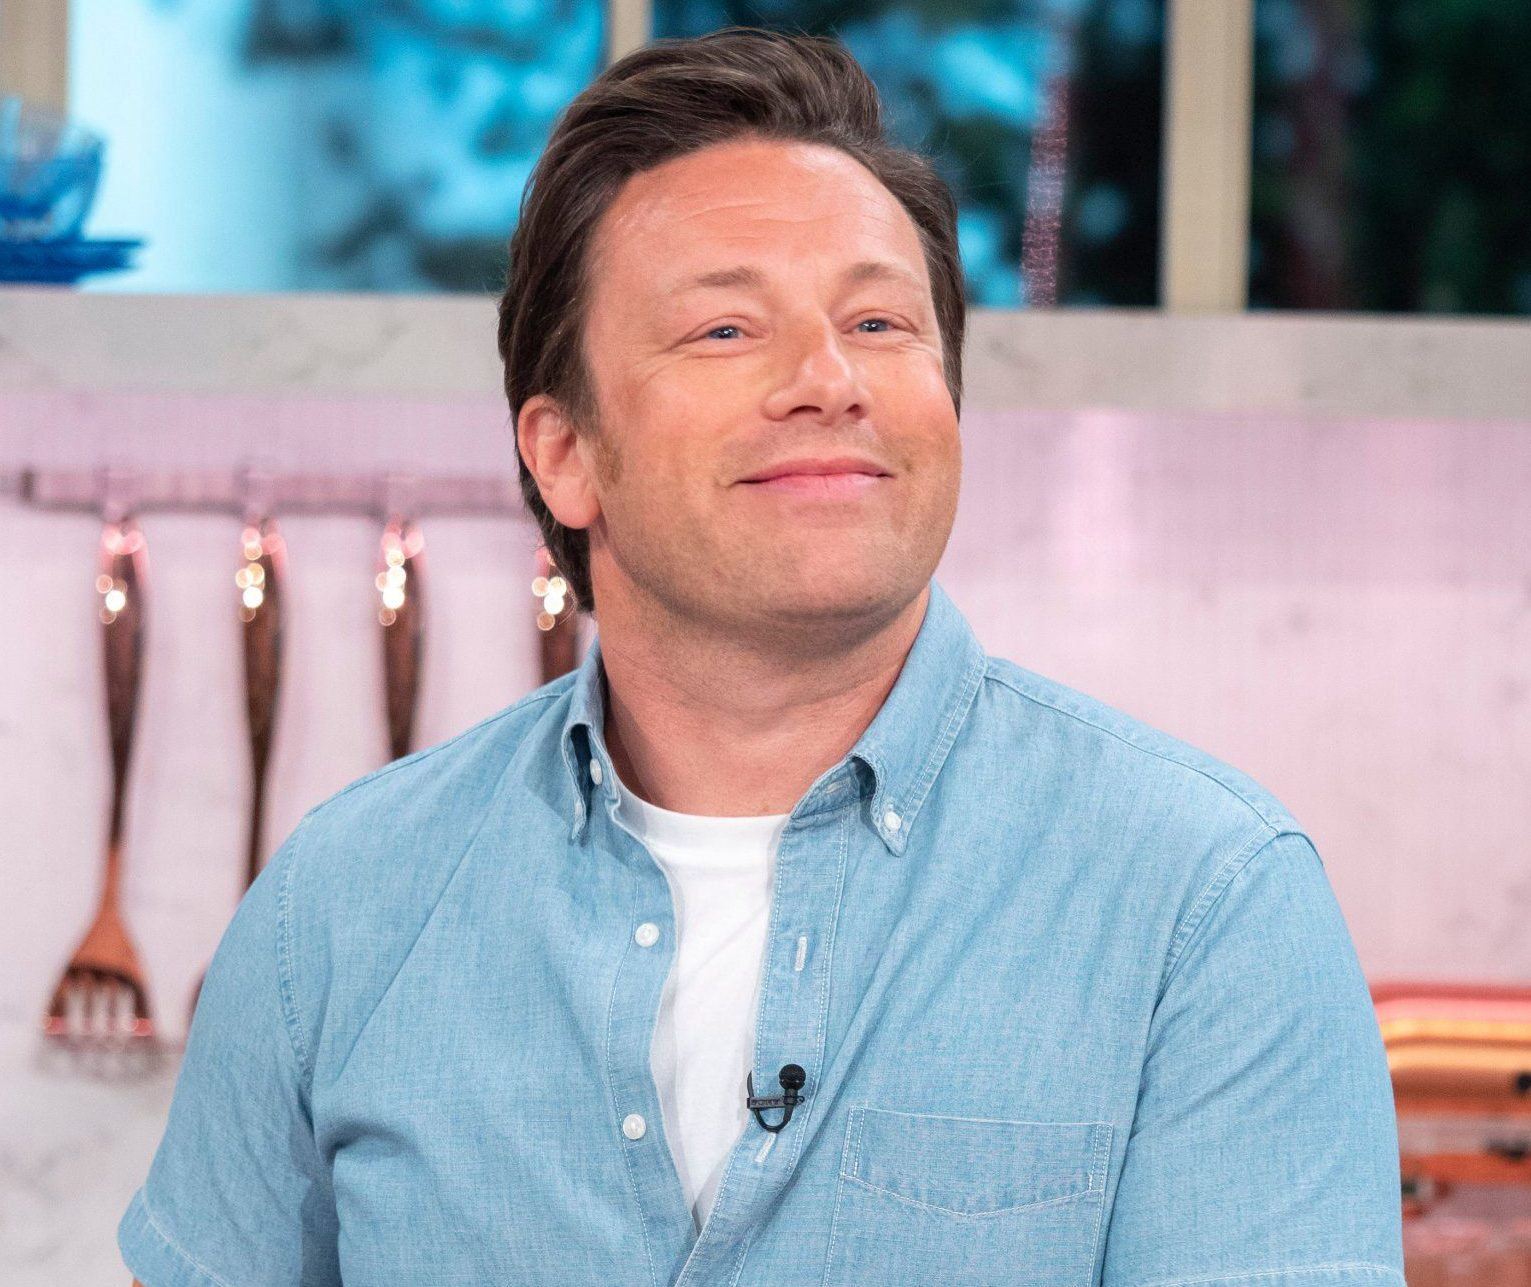 EDITORIAL USE ONLY. NO MERCHANDISING. Mandatory Credit: Photo by Ken McKay/ITV/REX/Shutterstock (9691101cx) Jamie Oliver 'This Morning' TV show, London, UK - 23 May 2018